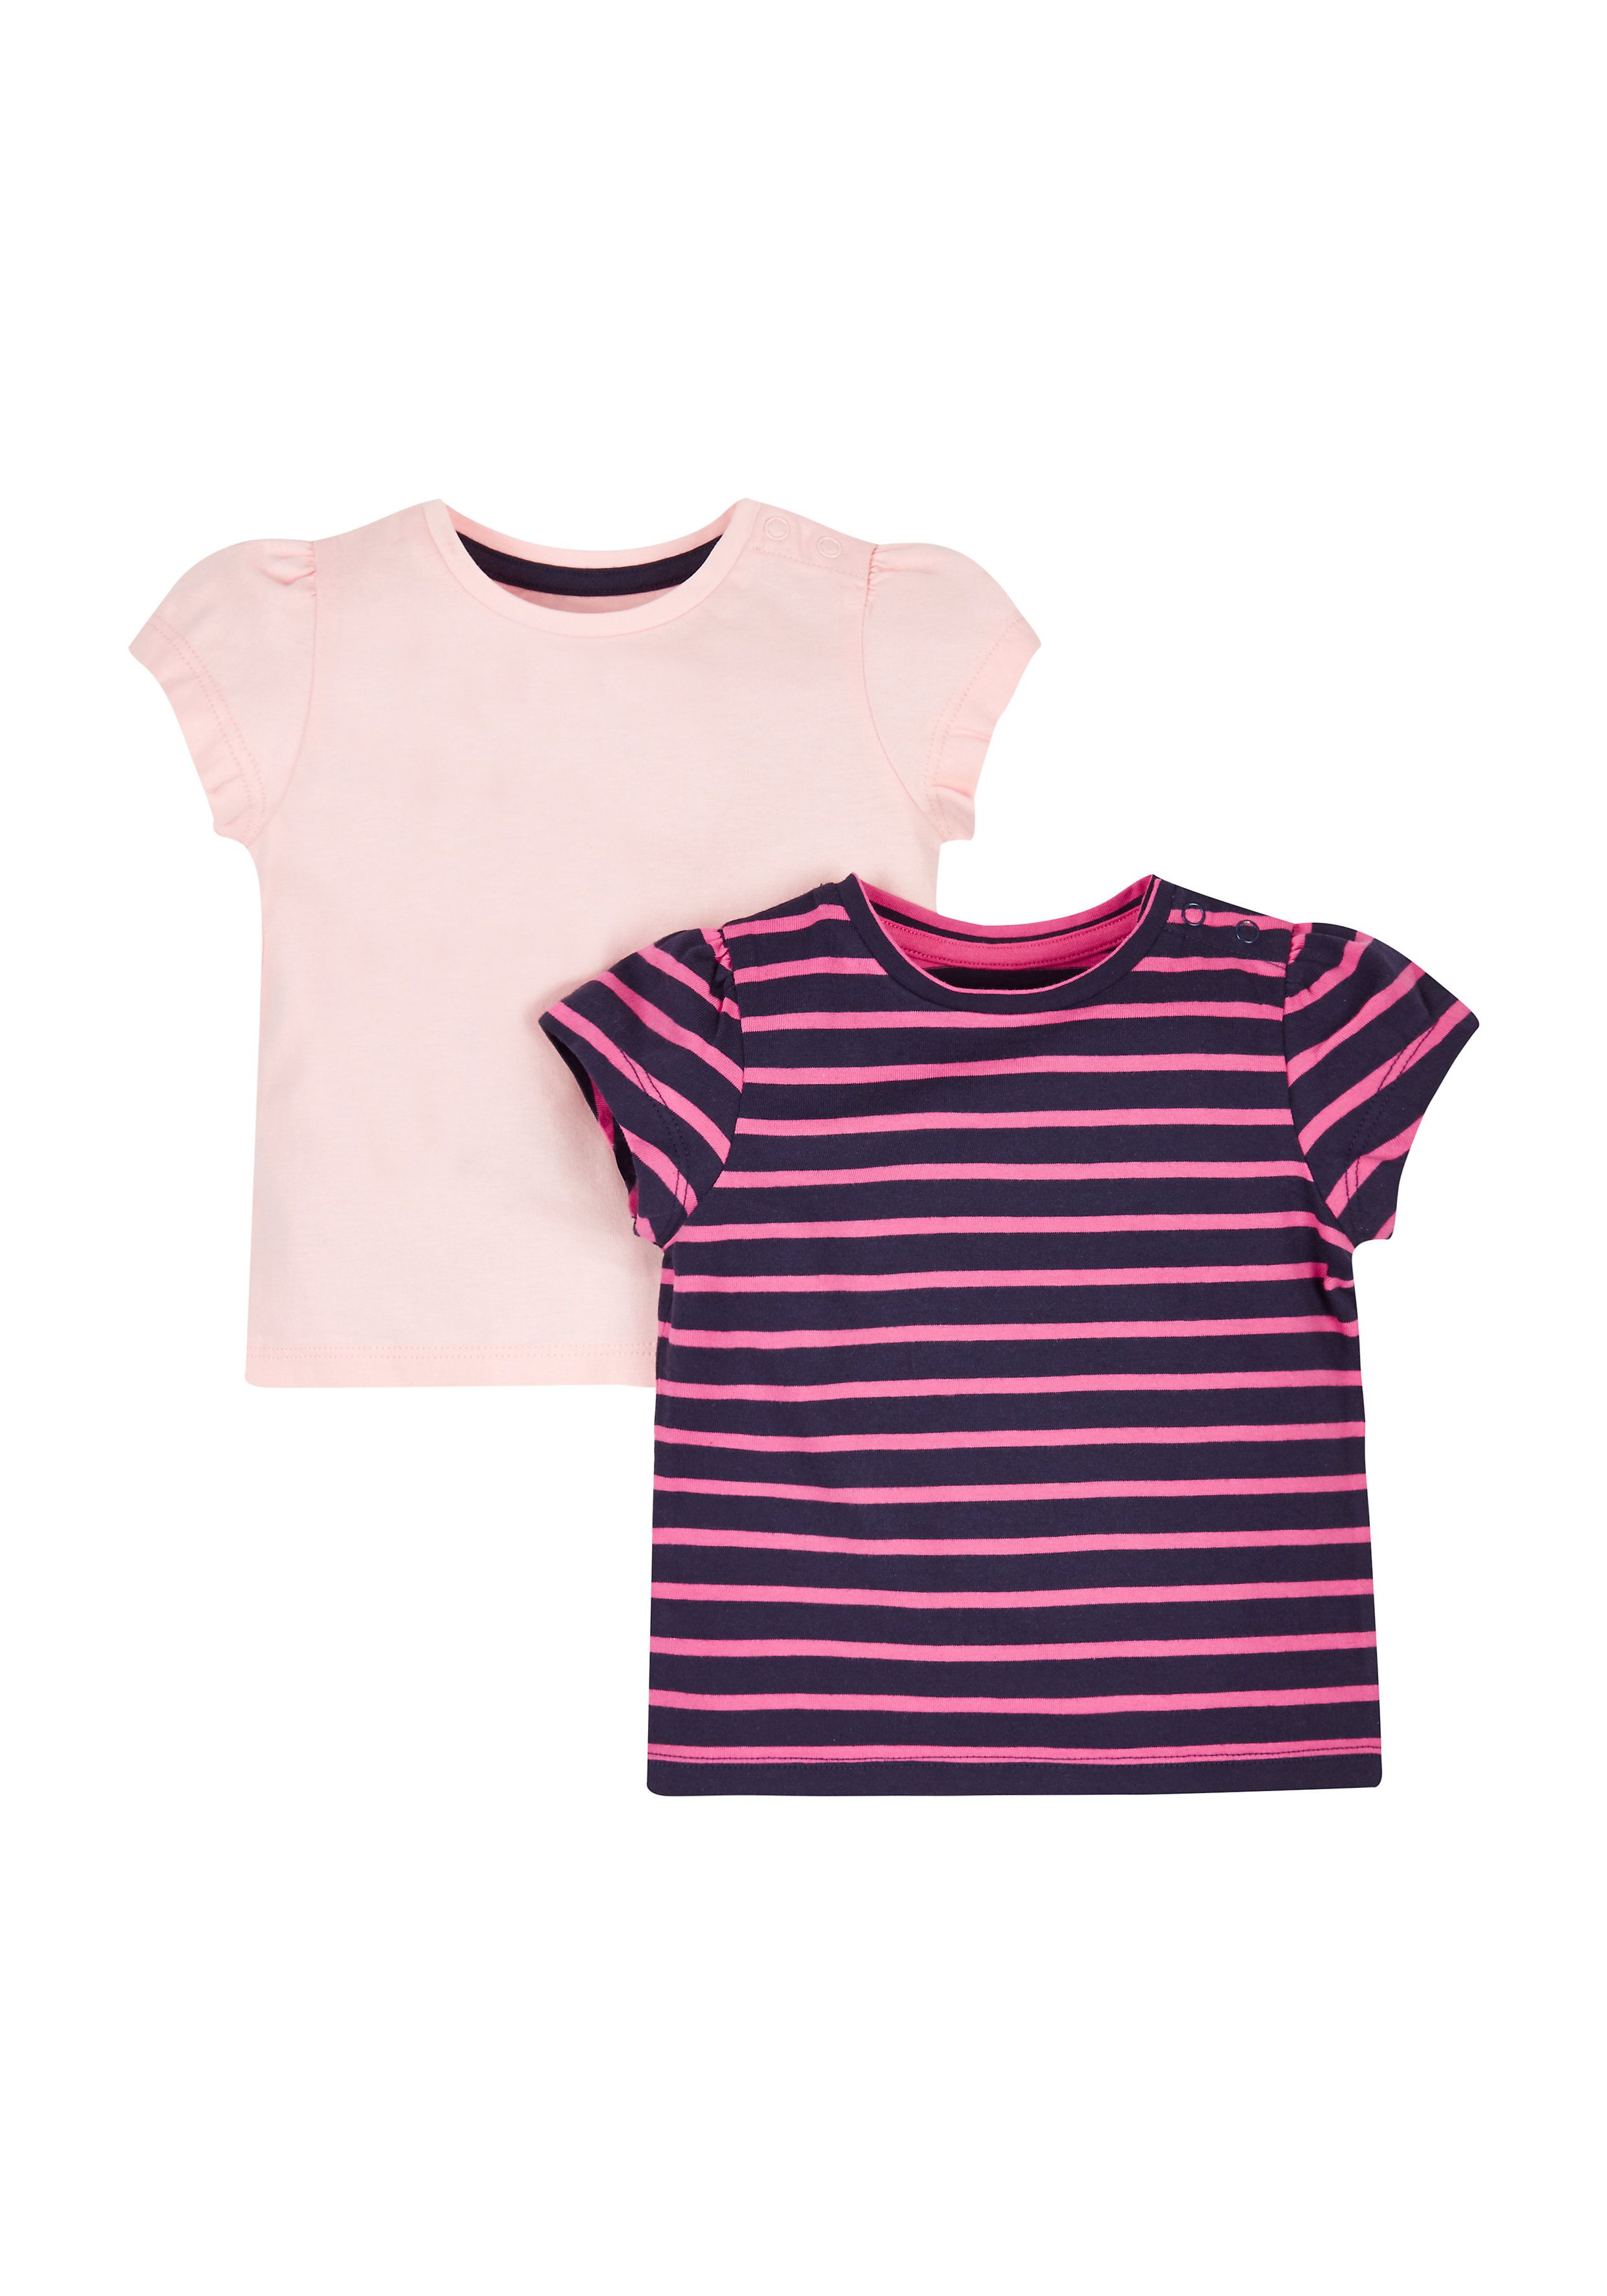 Mothercare   Navy Stripe And Pink T-Shirts - 2 Pack